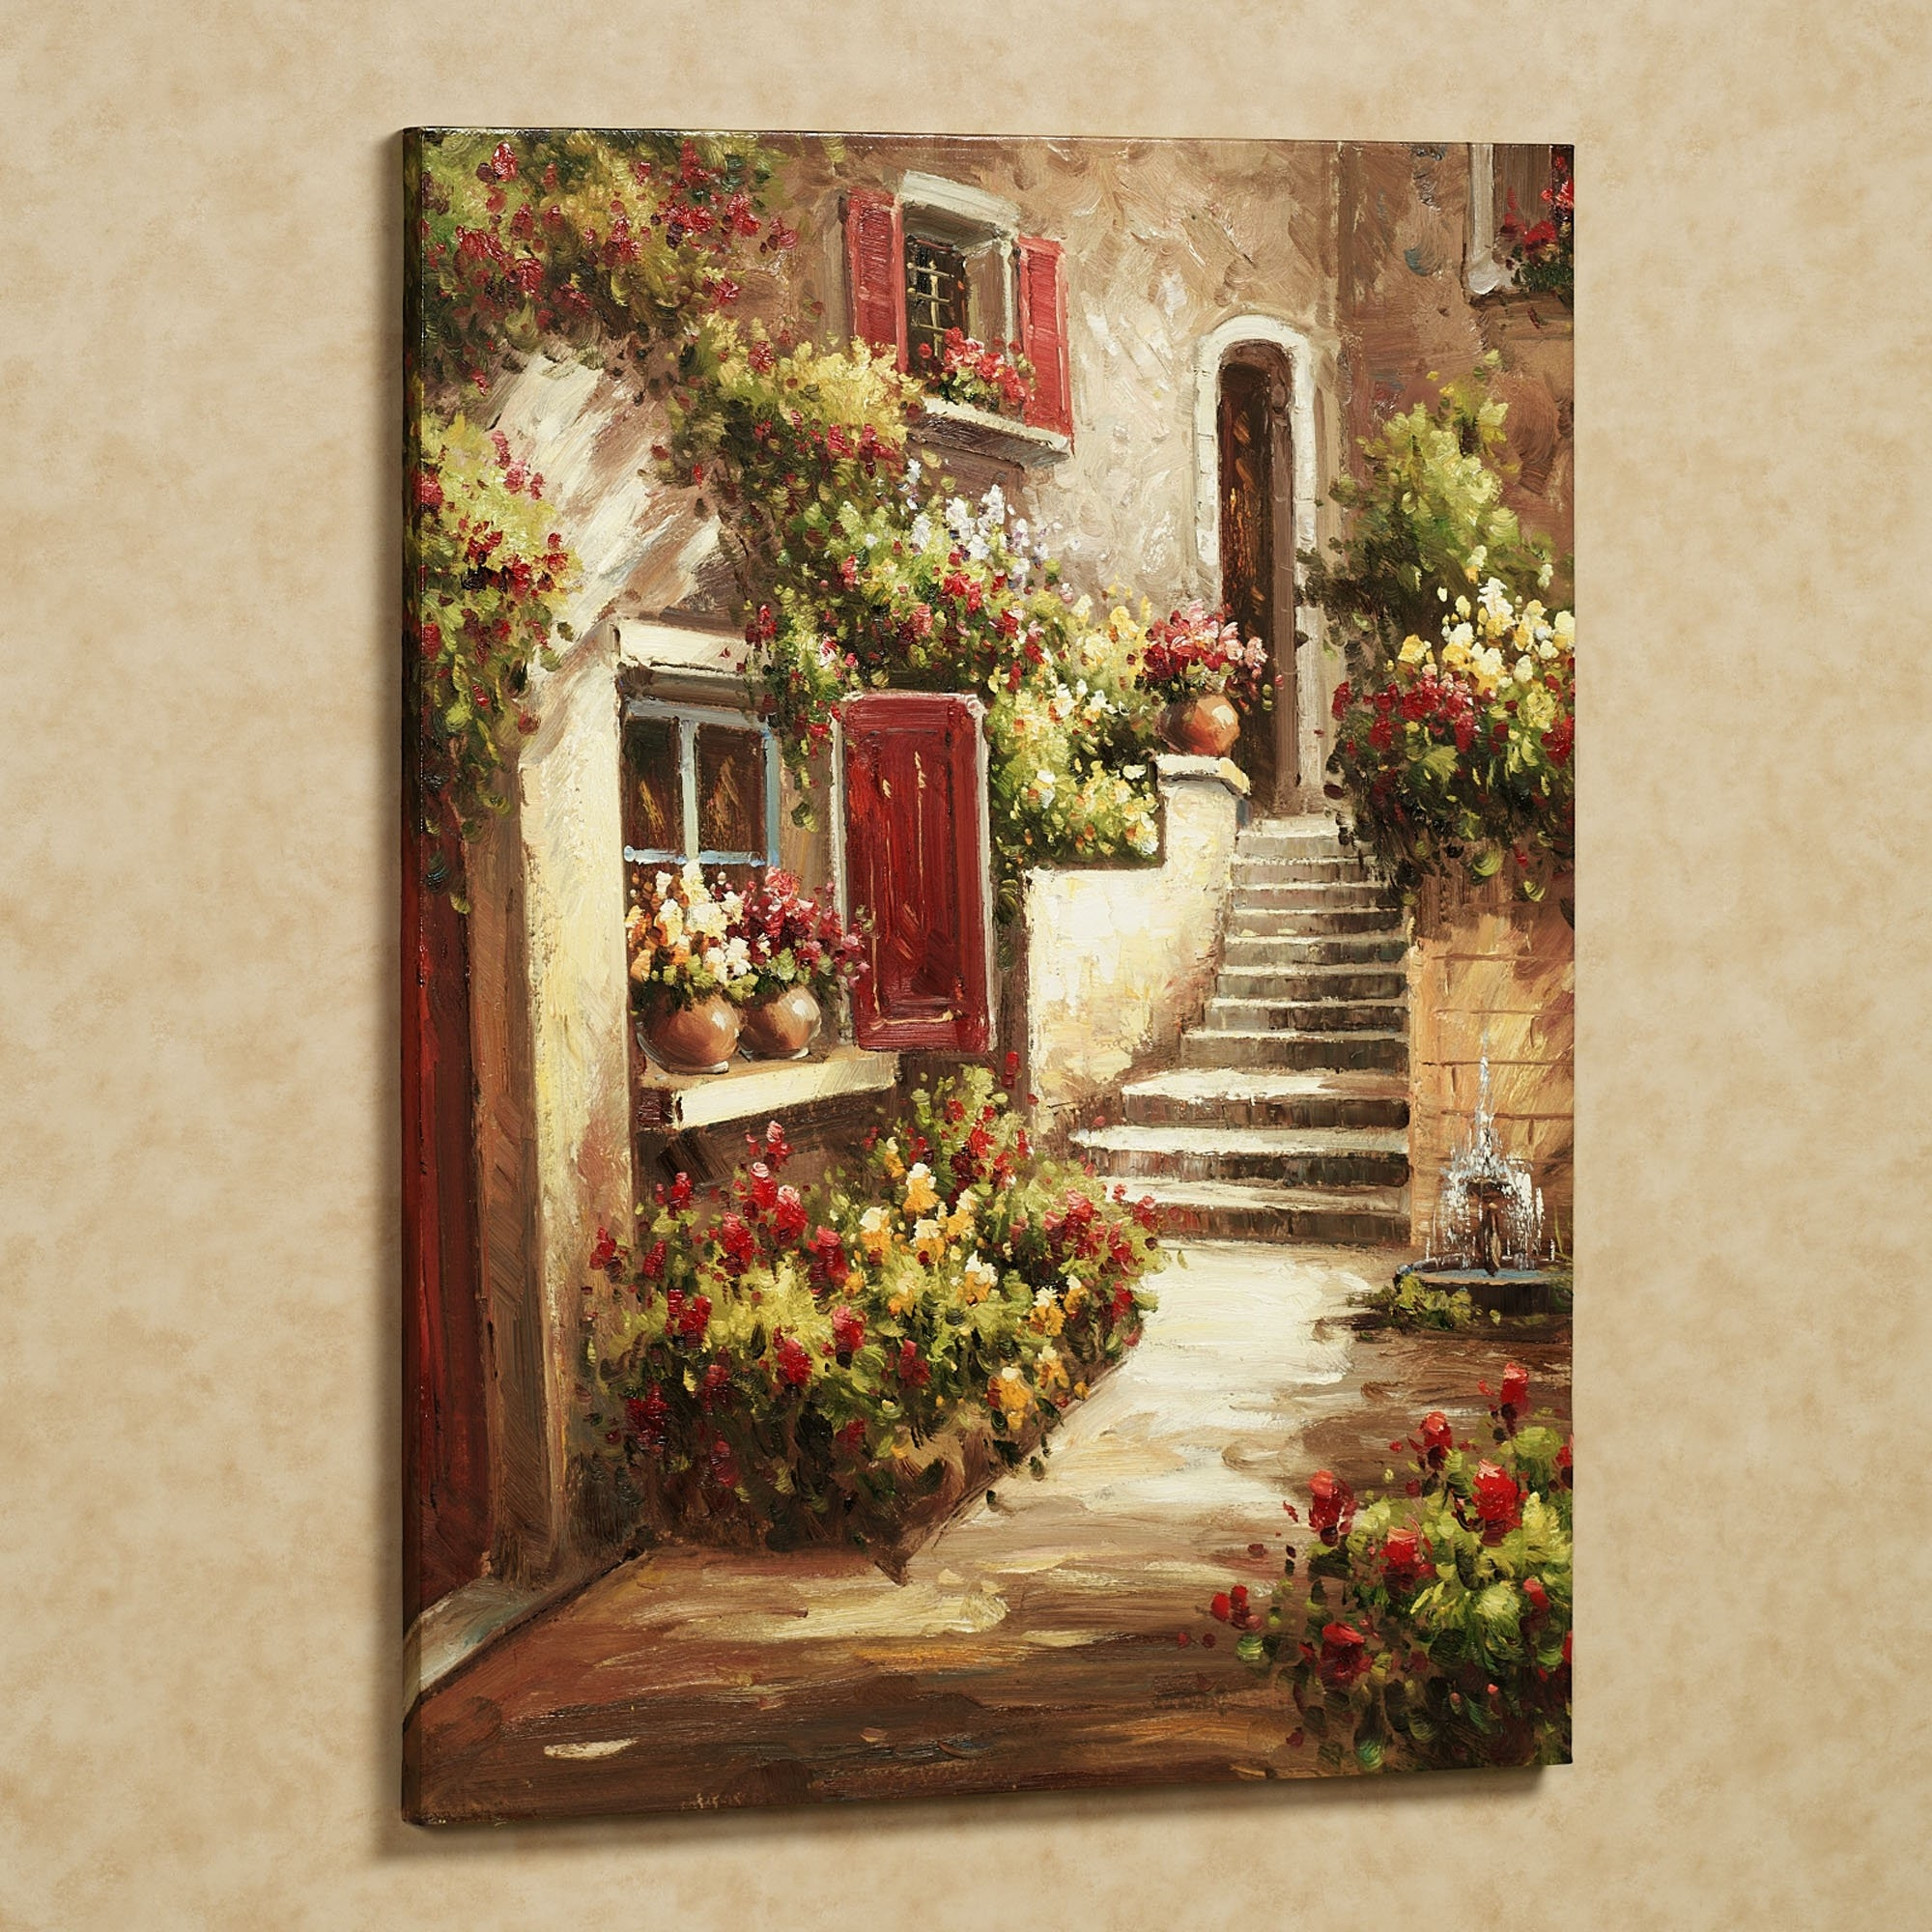 Tuscany Art | Home Tuscan Flowers Canvas Art Red | Art Tuscany with Tuscan Kitchen Wall Art 27089